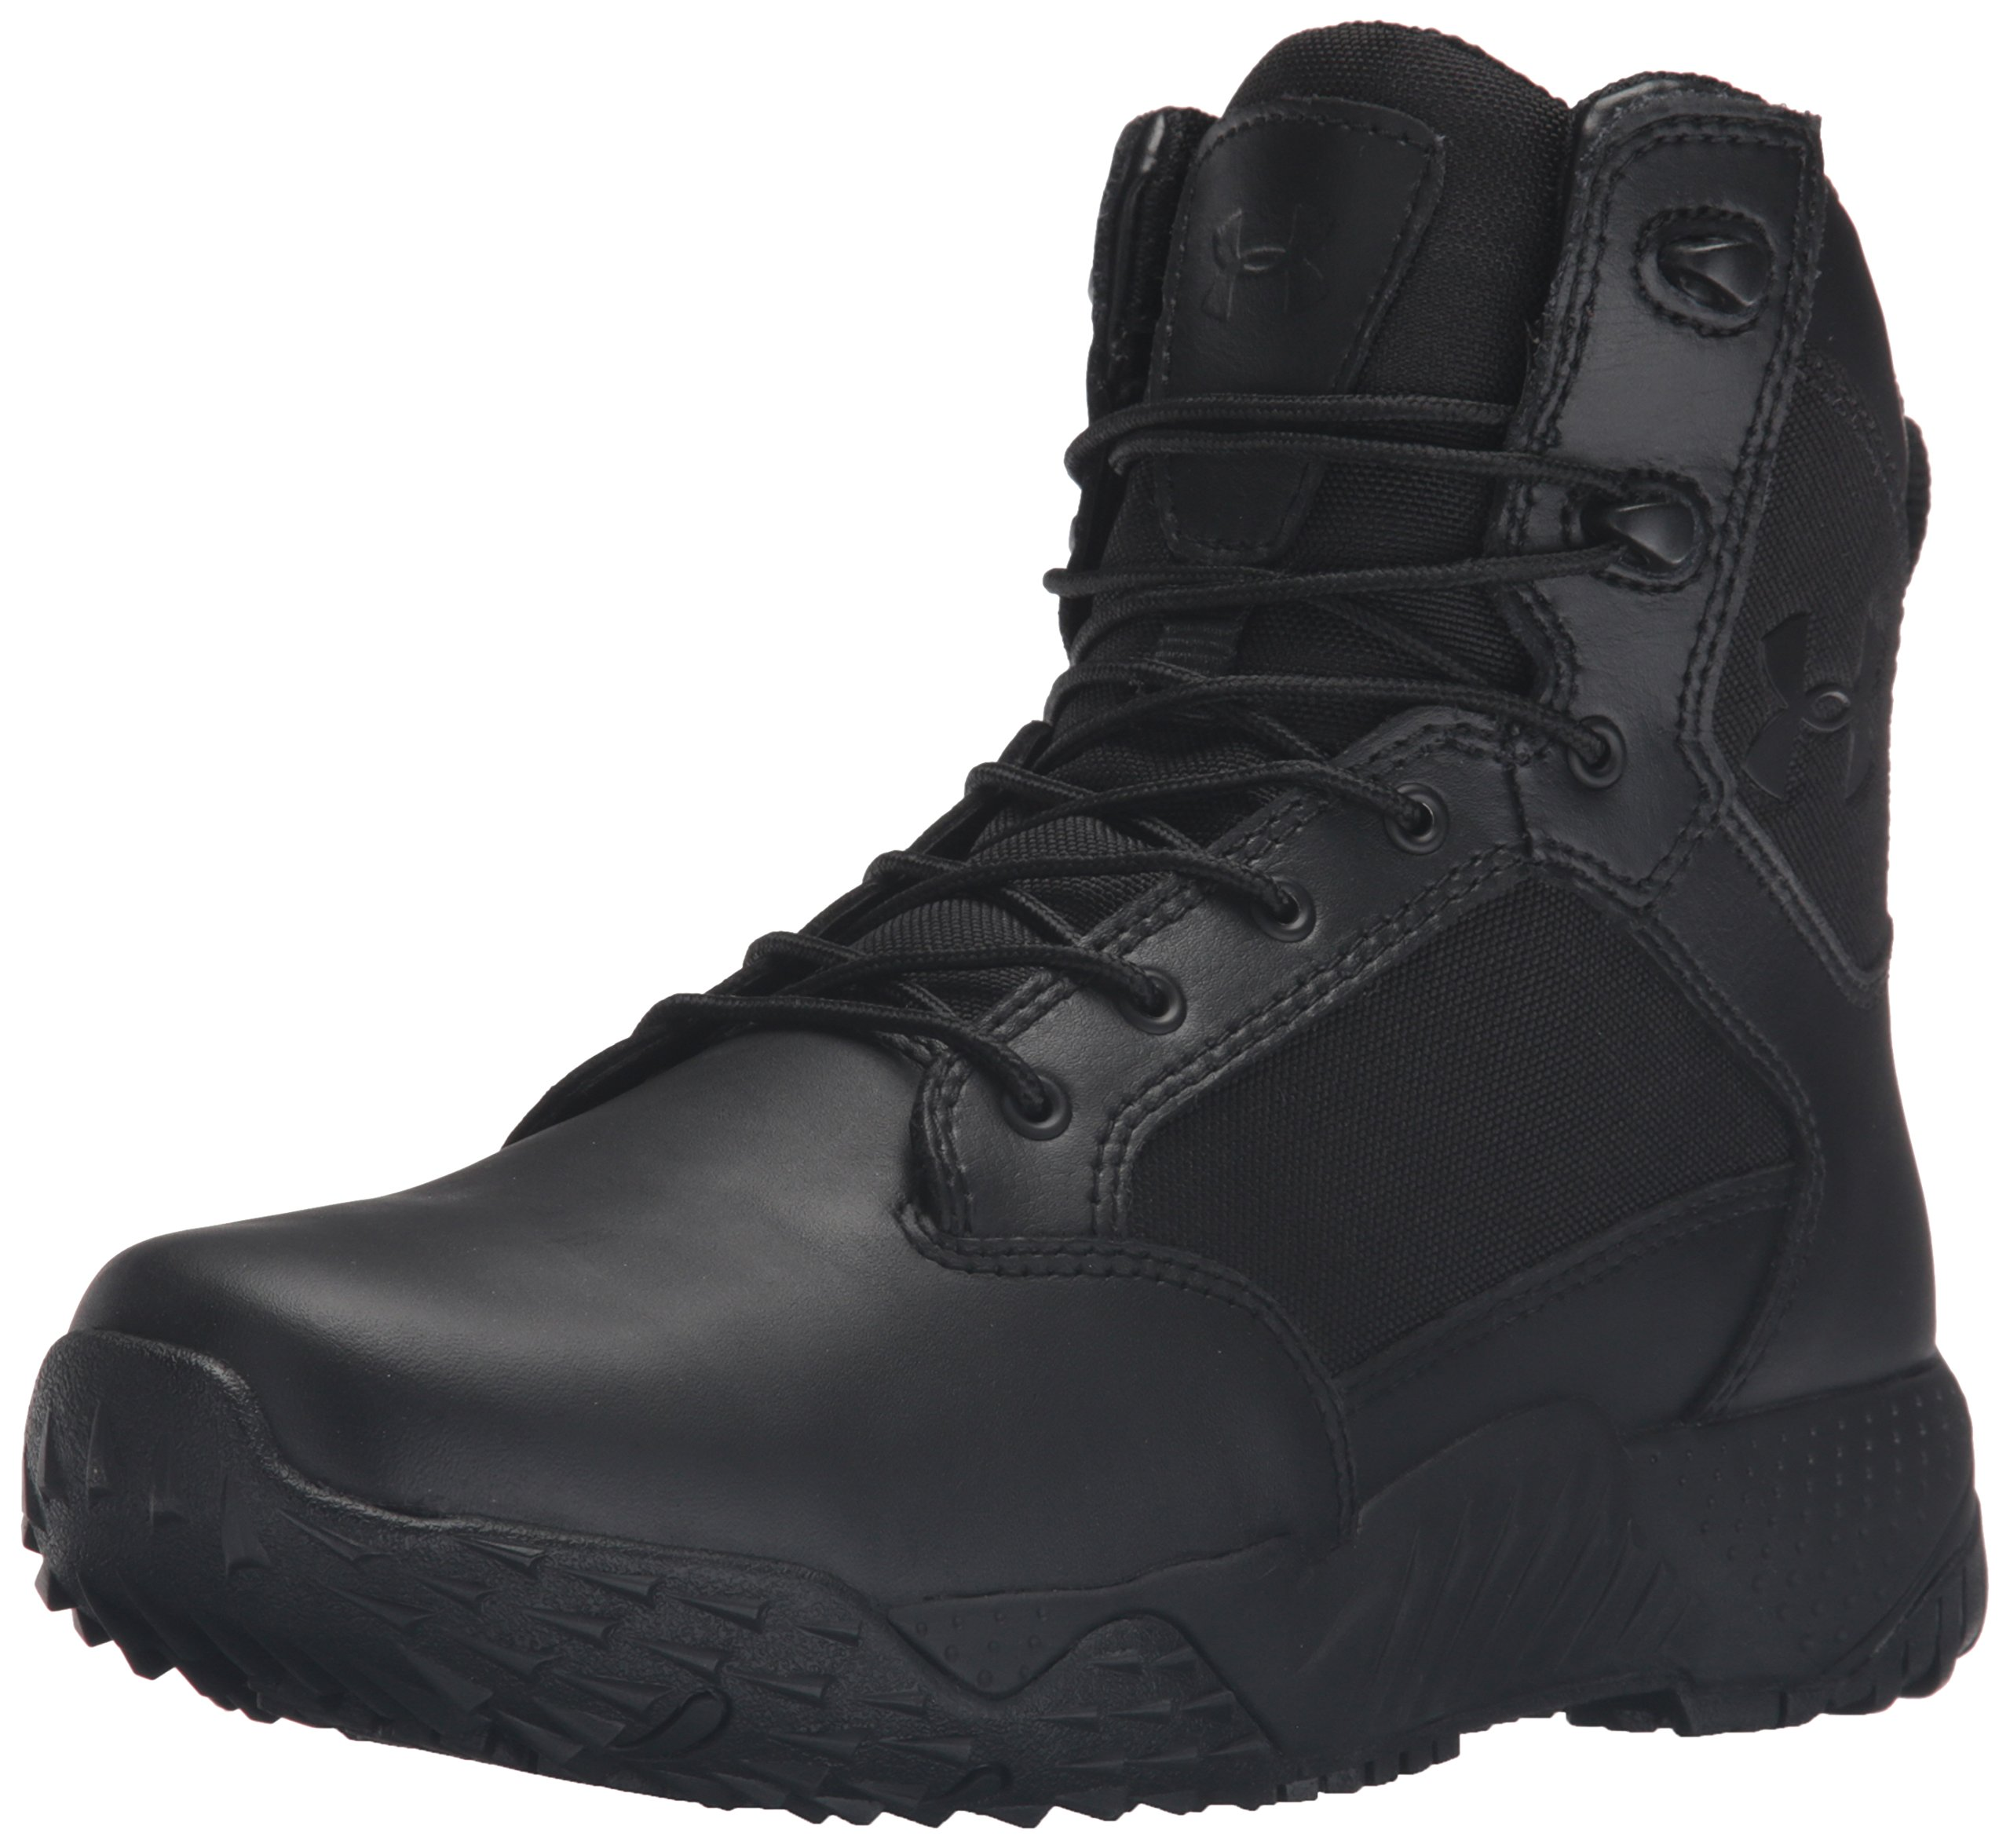 Under Armour Womens Stellar Military and Tactical Boot, Black (001)/Black, 8.5